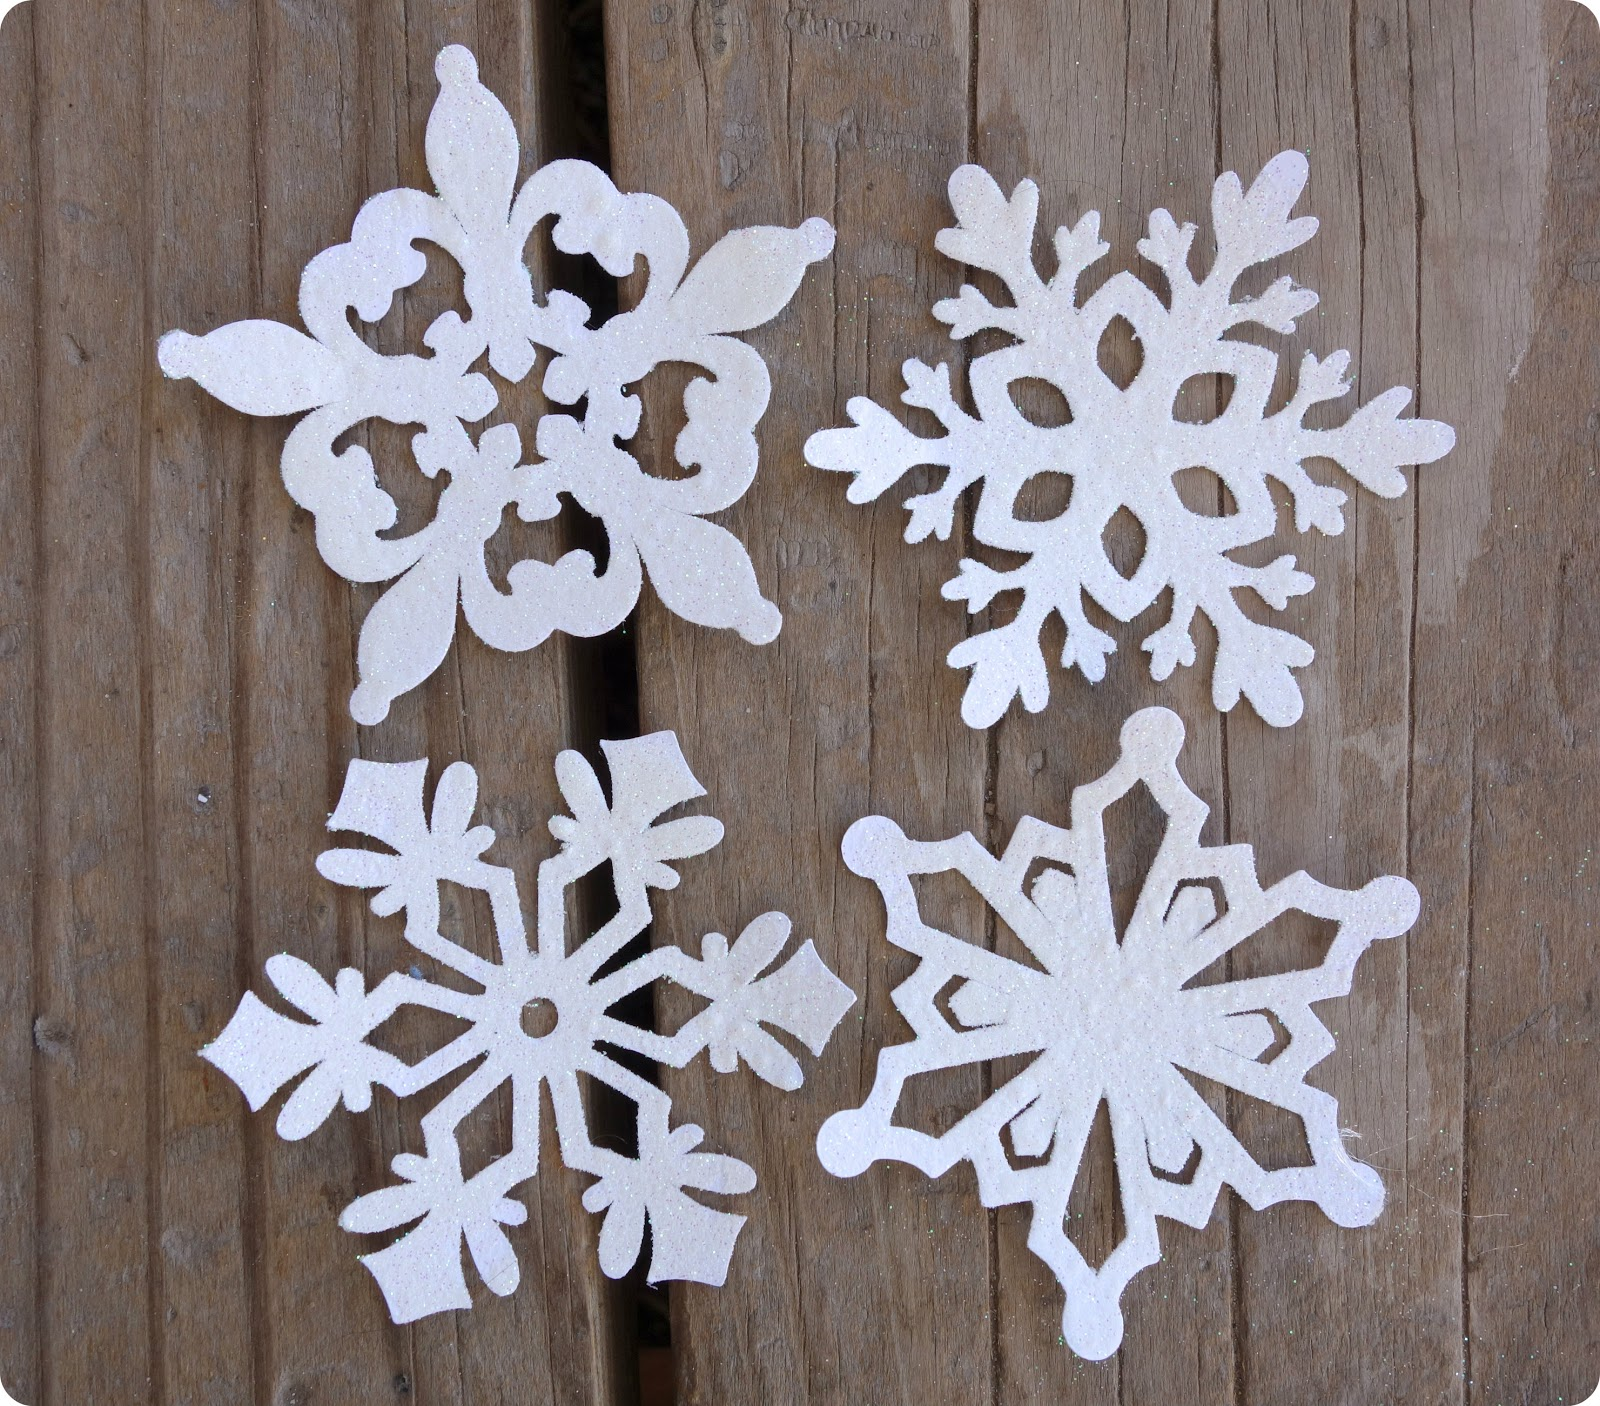 Make snowflake ornaments - I Also Use My Winter Lace Cartridge To Make Some White Snowflakes I Cut Out The Snowflakes Sprayed Them With Spray Adhesive And Then Sprinkled Them With